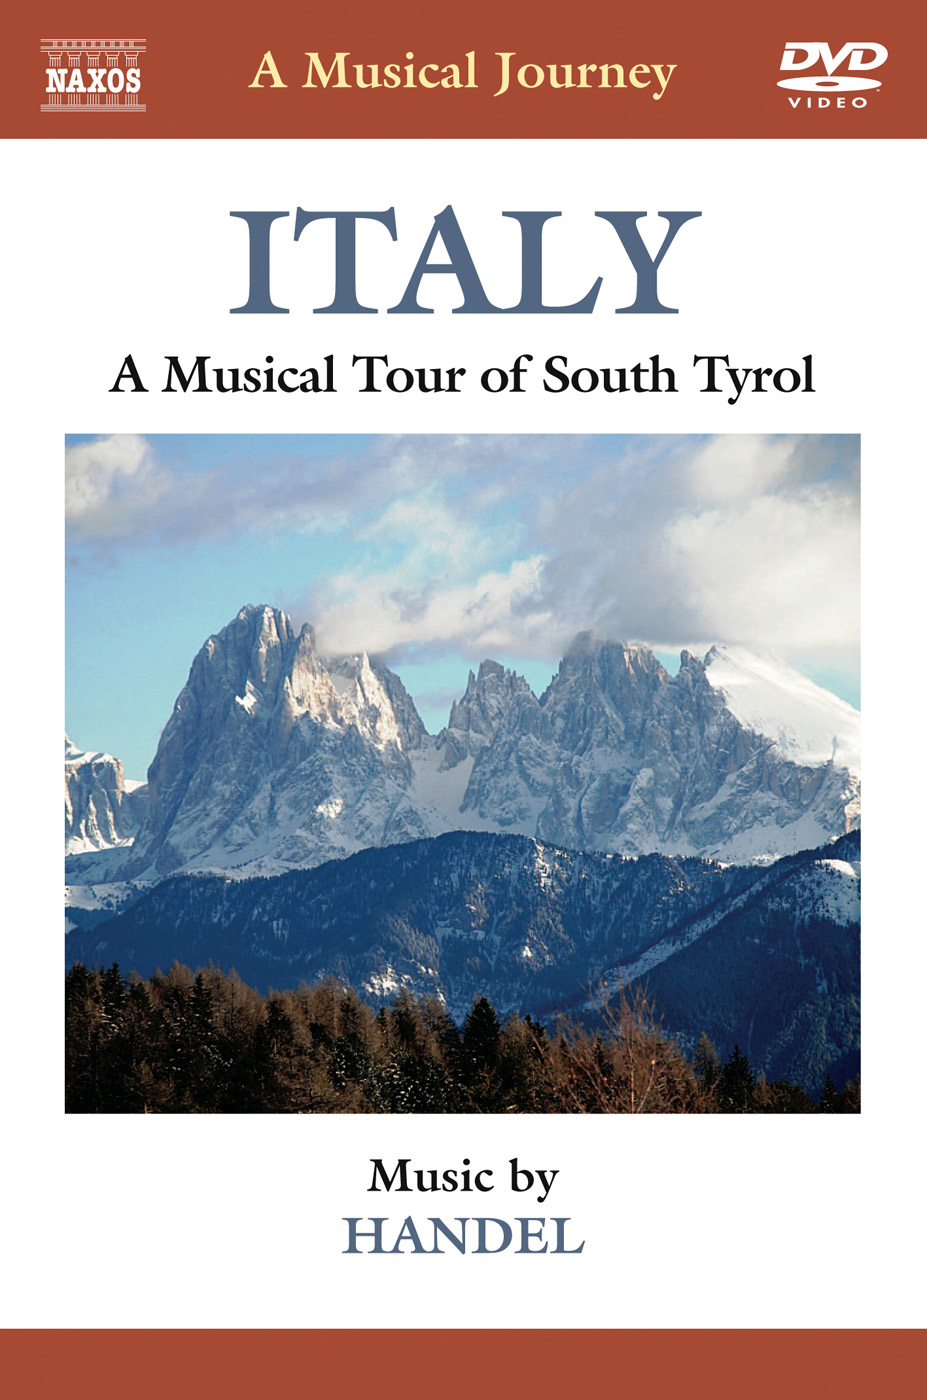 A Musical Journey: Italy - A Musical Tour of South Tyrol (Handel)